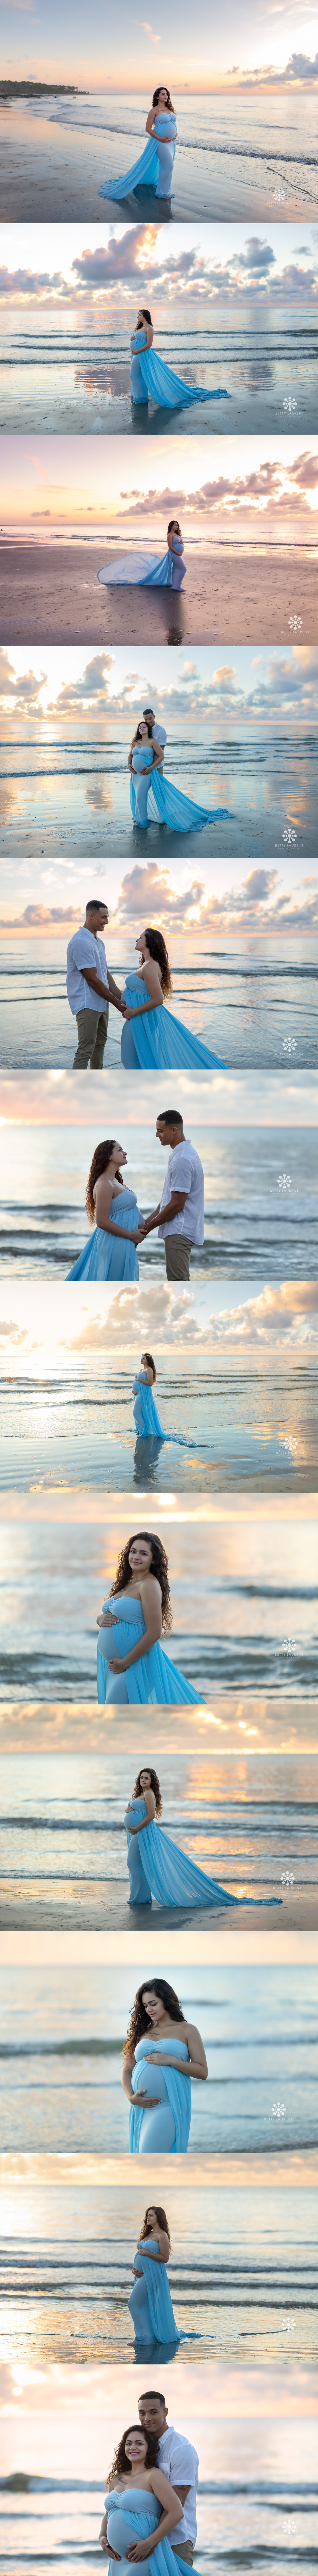 beach sunrise maternity session in summer with blue long dress